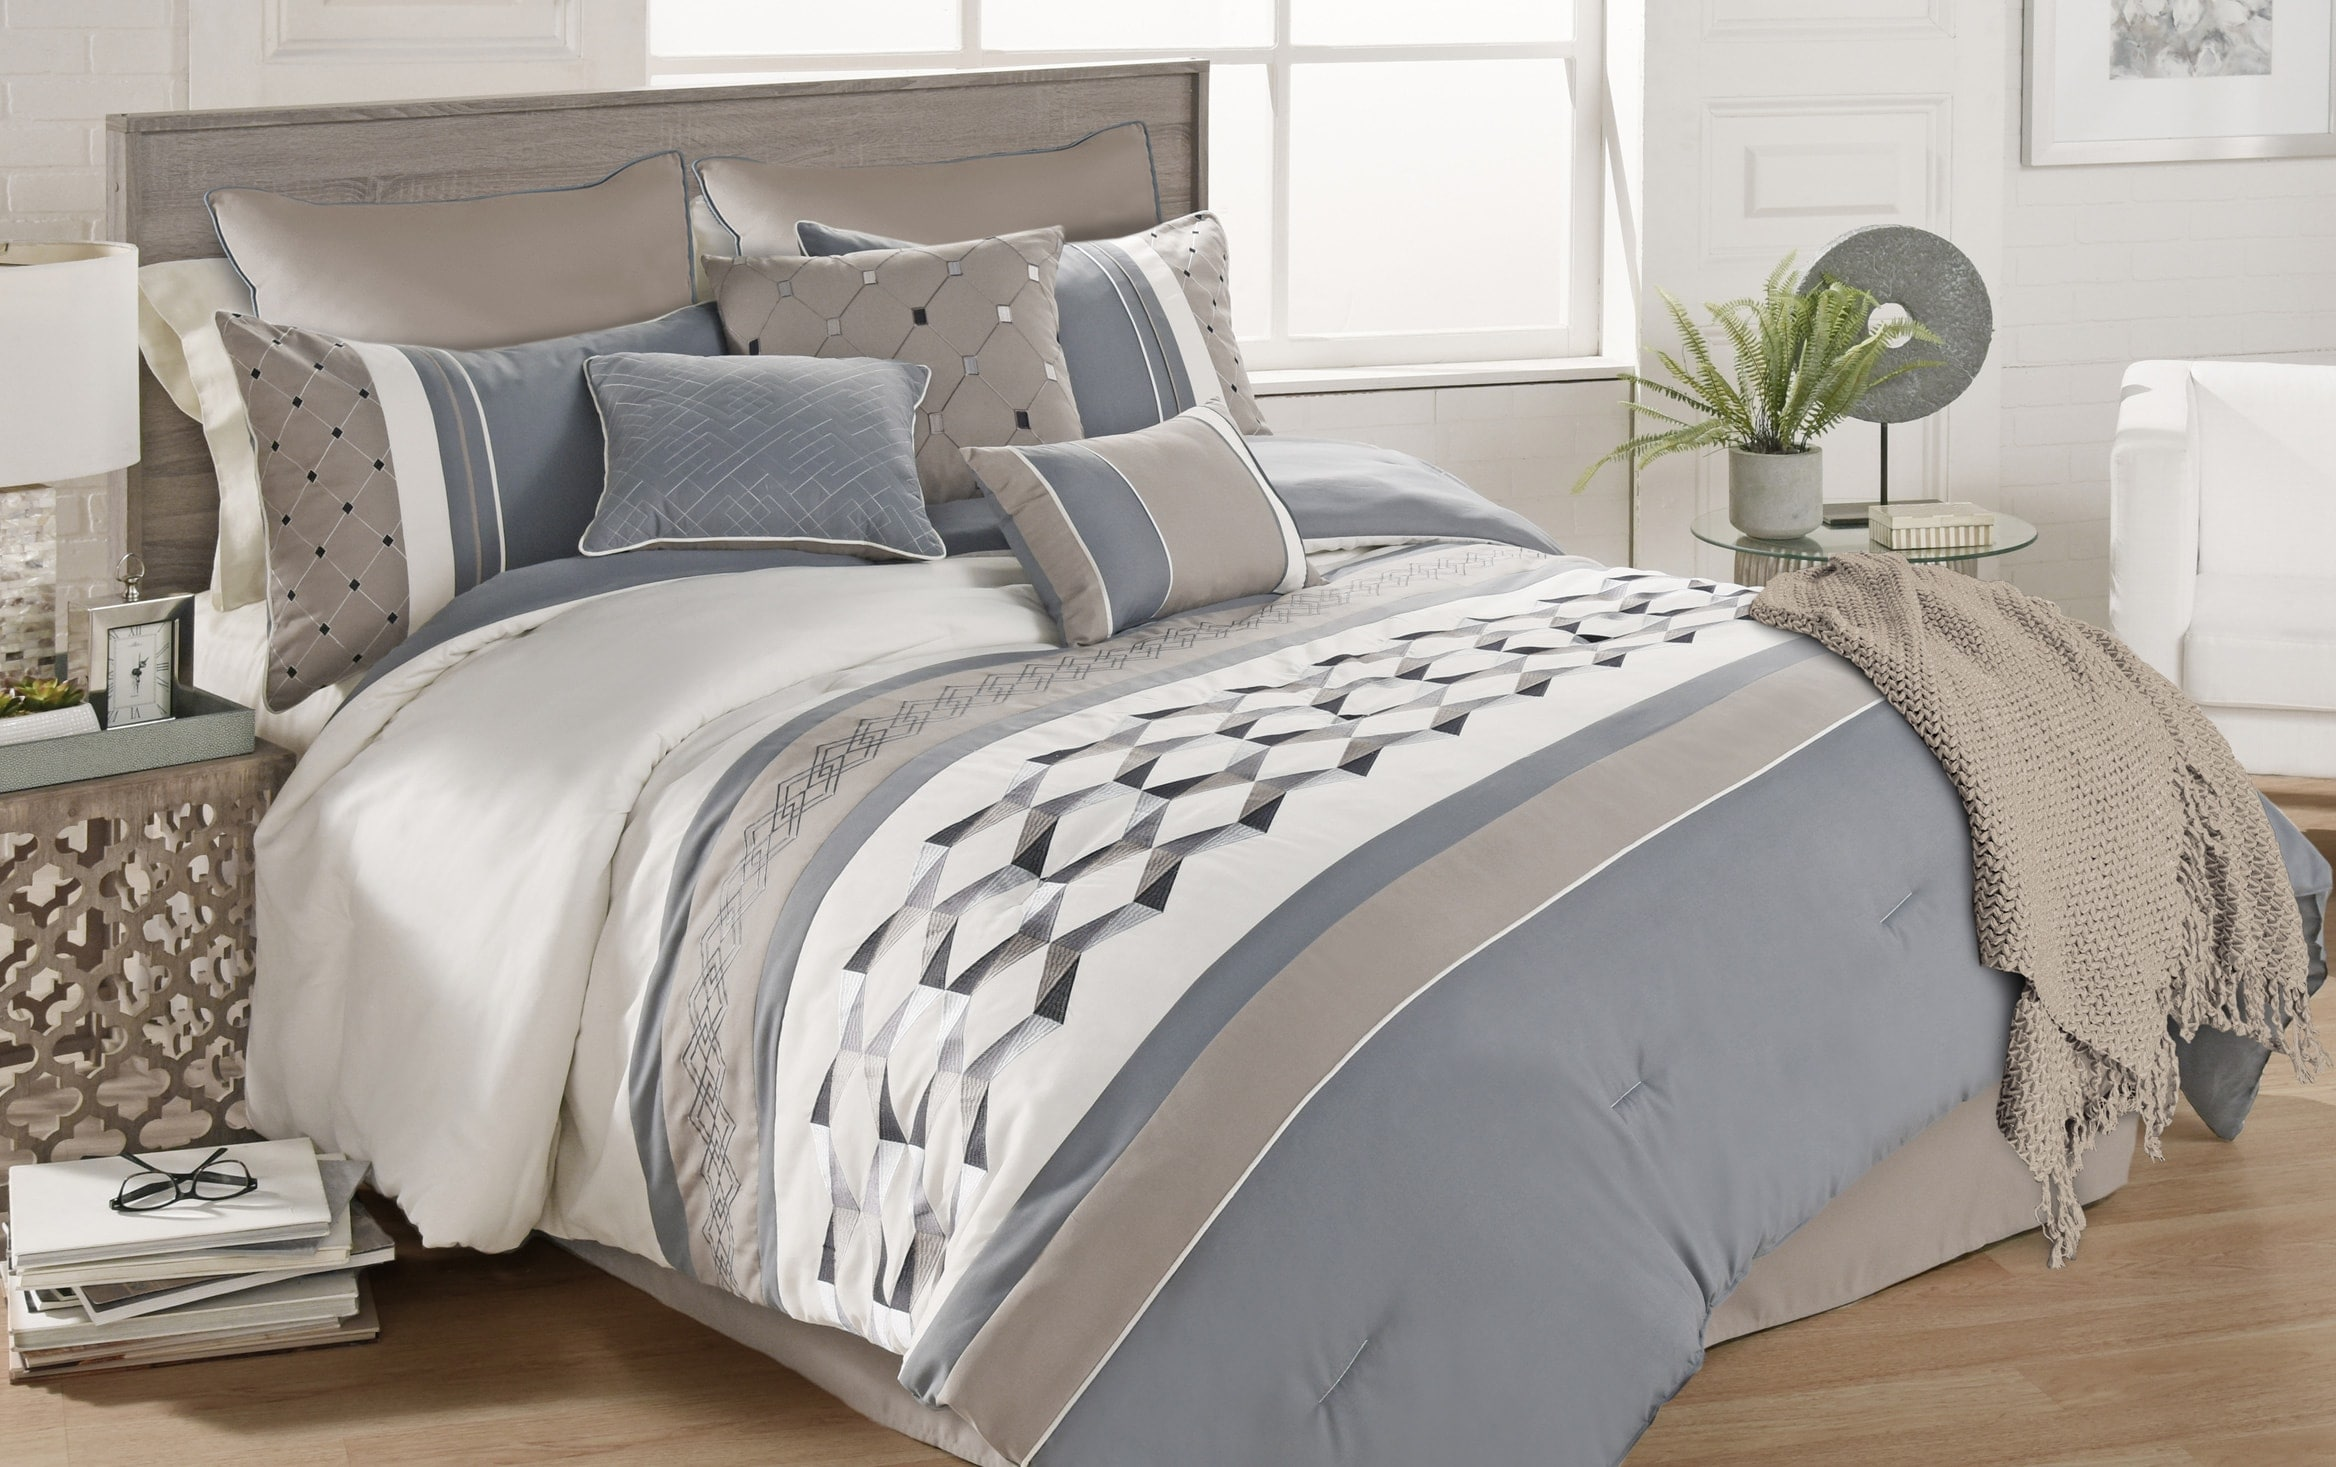 Huntington 10 Piece Queen Comforter Set Bobs Com